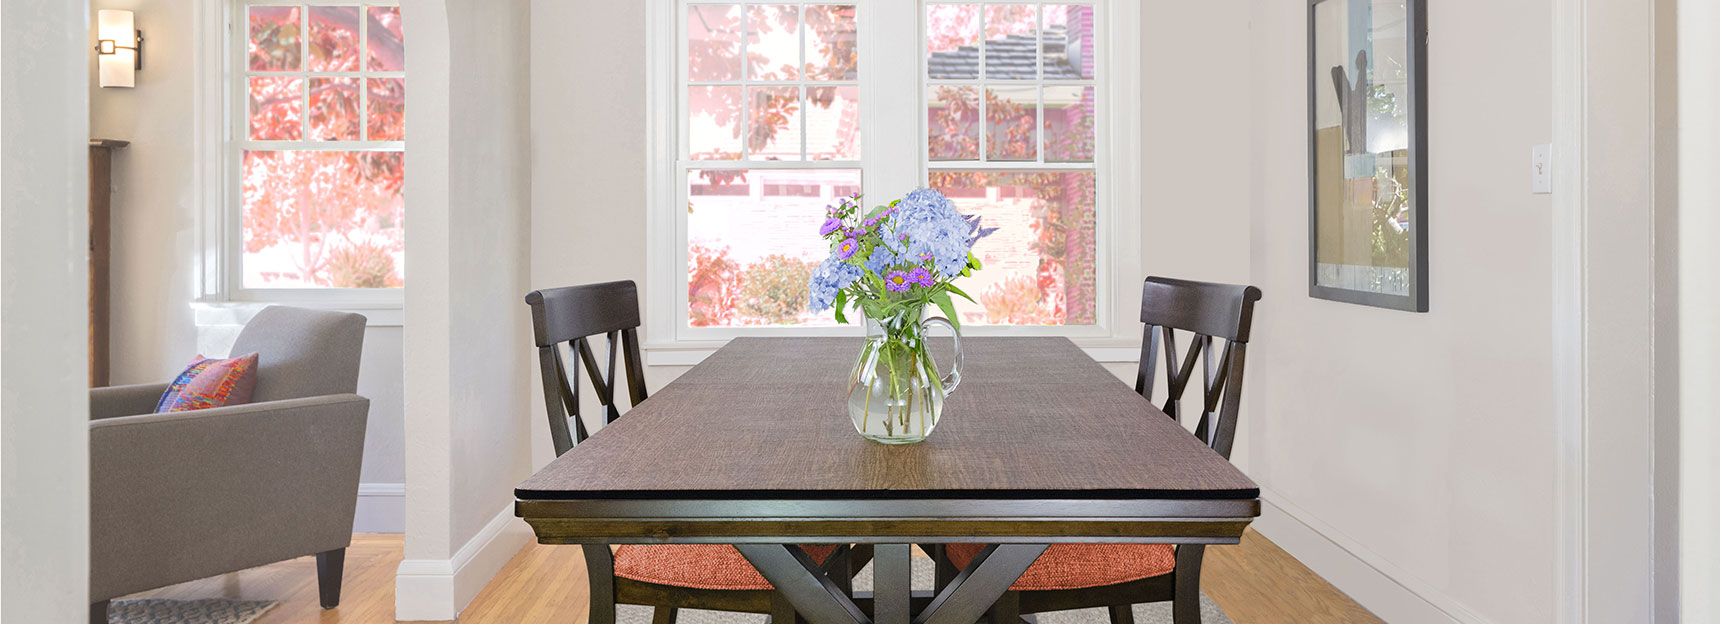 Superior Table Pad Co. Inc | Table Pads | Dining Table ...